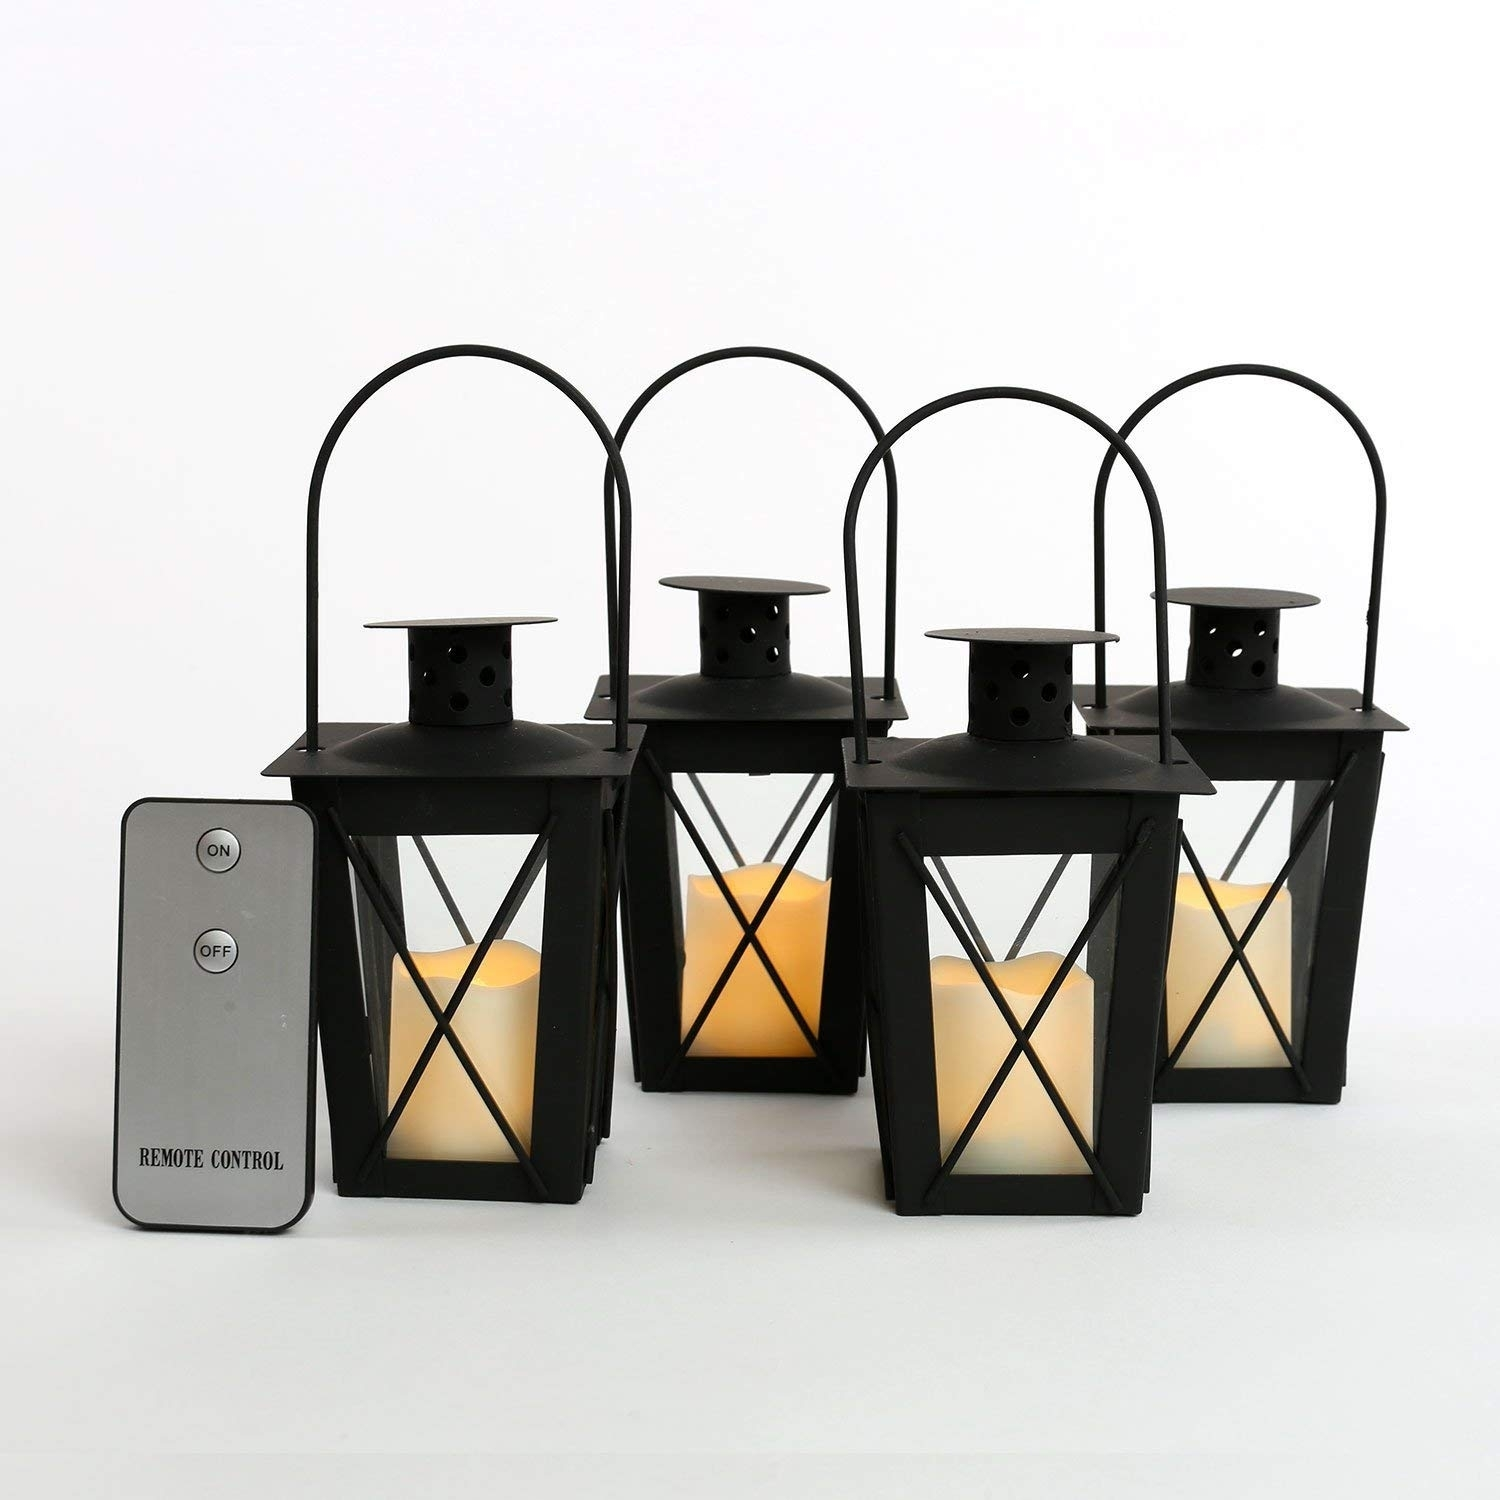 Amazon: 4 Black Mini Flameless Lanterns With 4 Ivory Resin throughout Outdoor Lanterns With Remote Control (Image 2 of 20)